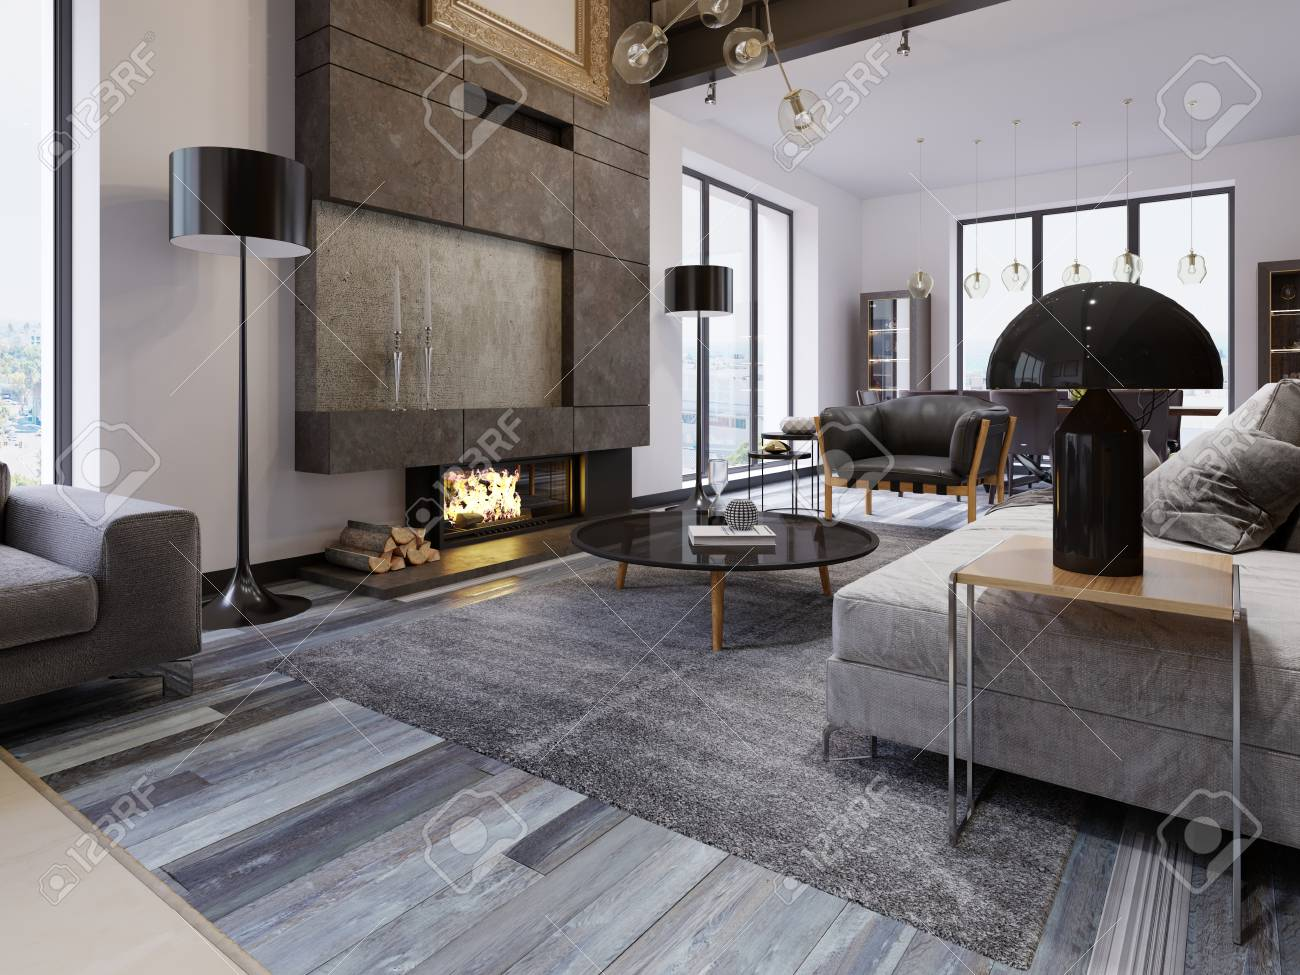 a large spacious living room in a loft style, with a fireplace..